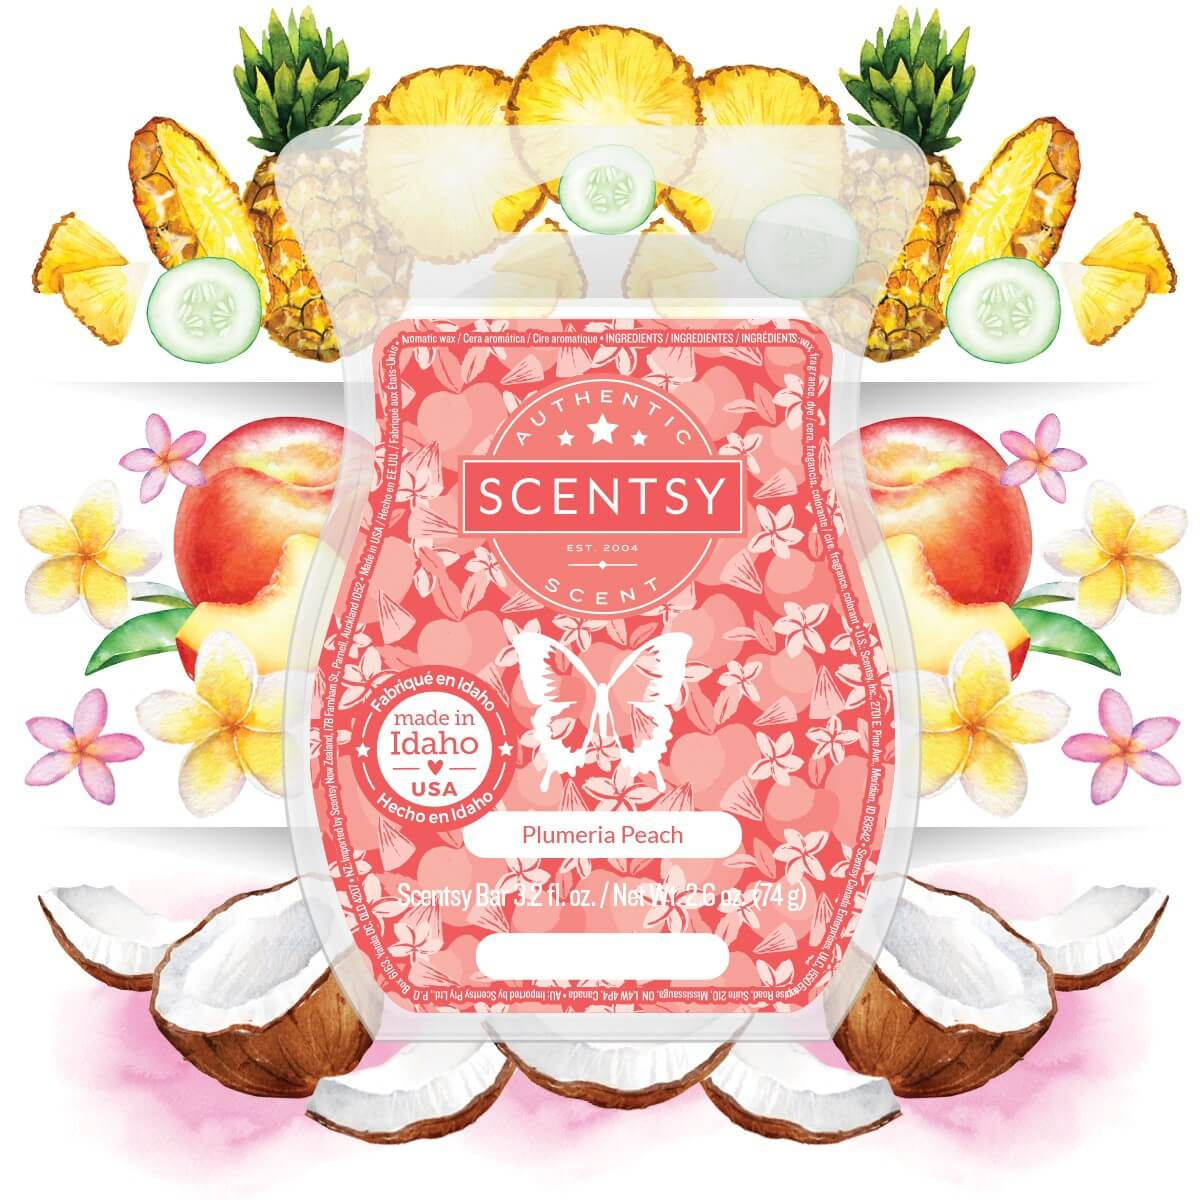 PLUMERIA PEACH SCENTSY FRAGRANCE NOTES